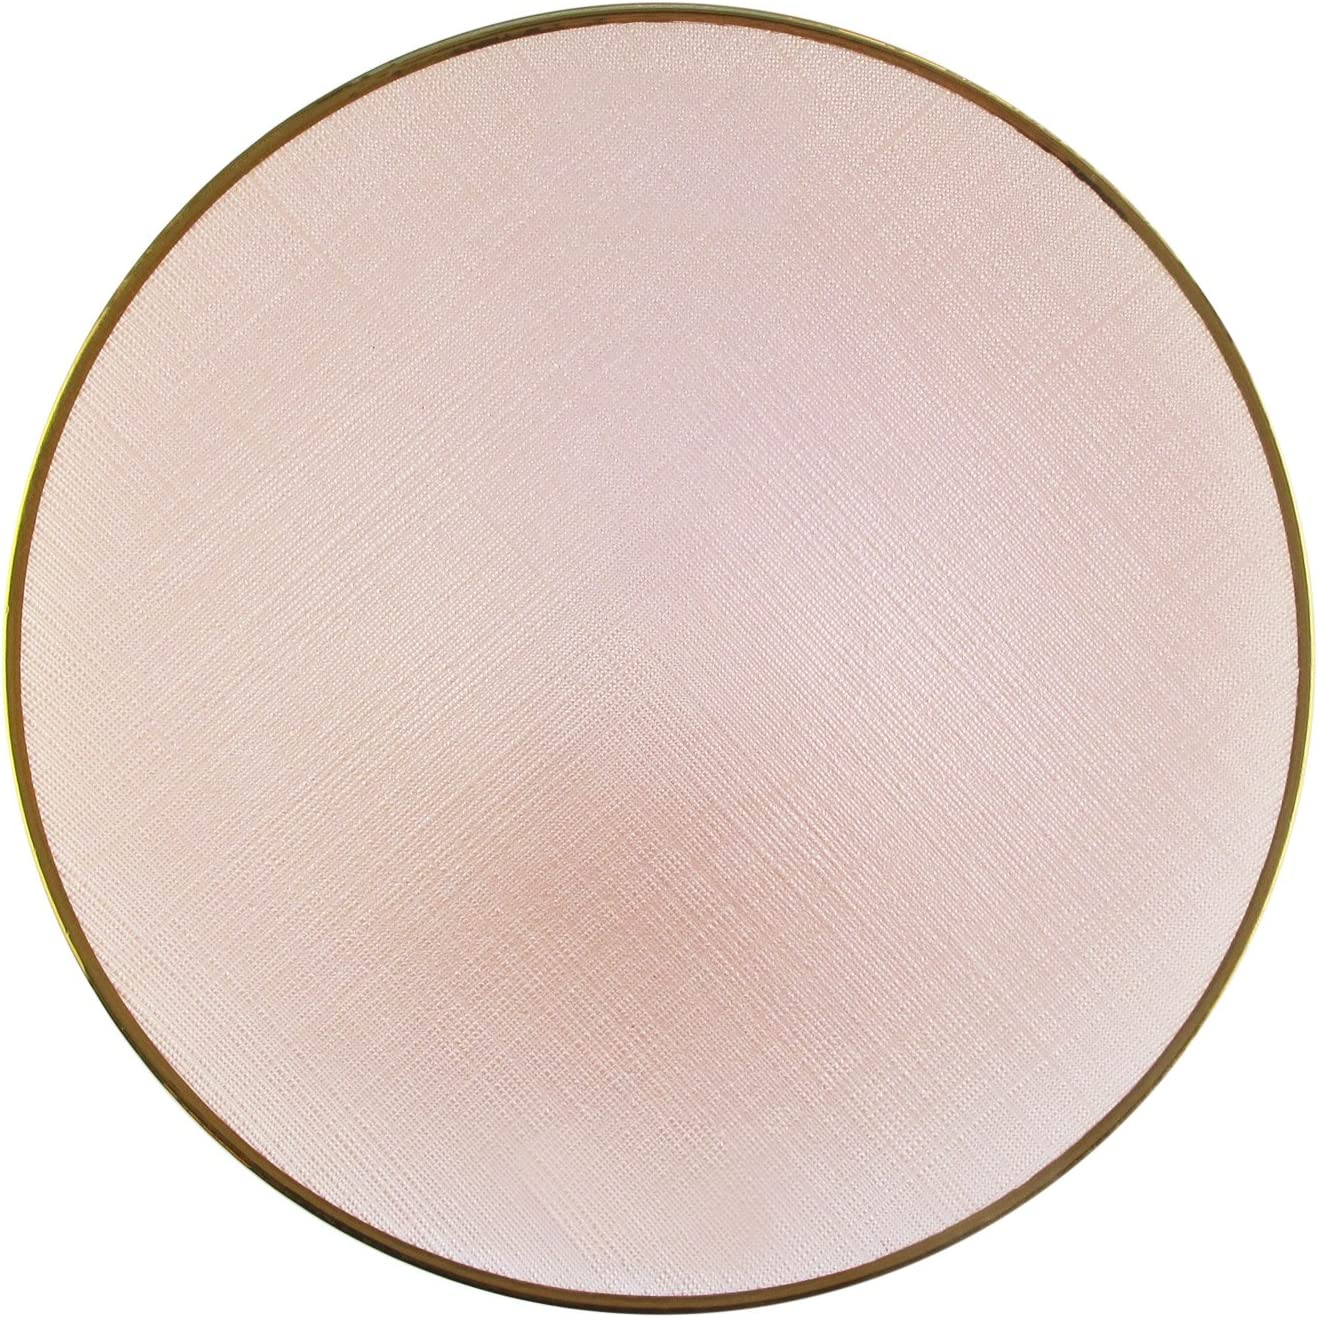 Koyal Wholesale 13 Matte Blush Pink Beaded Scallop Charger Plates Tabletop Bulk Set of 4 Acrylic Plastic Charger Plates Tablescape for Wedding Holidays Antique Finish Table Setting Events